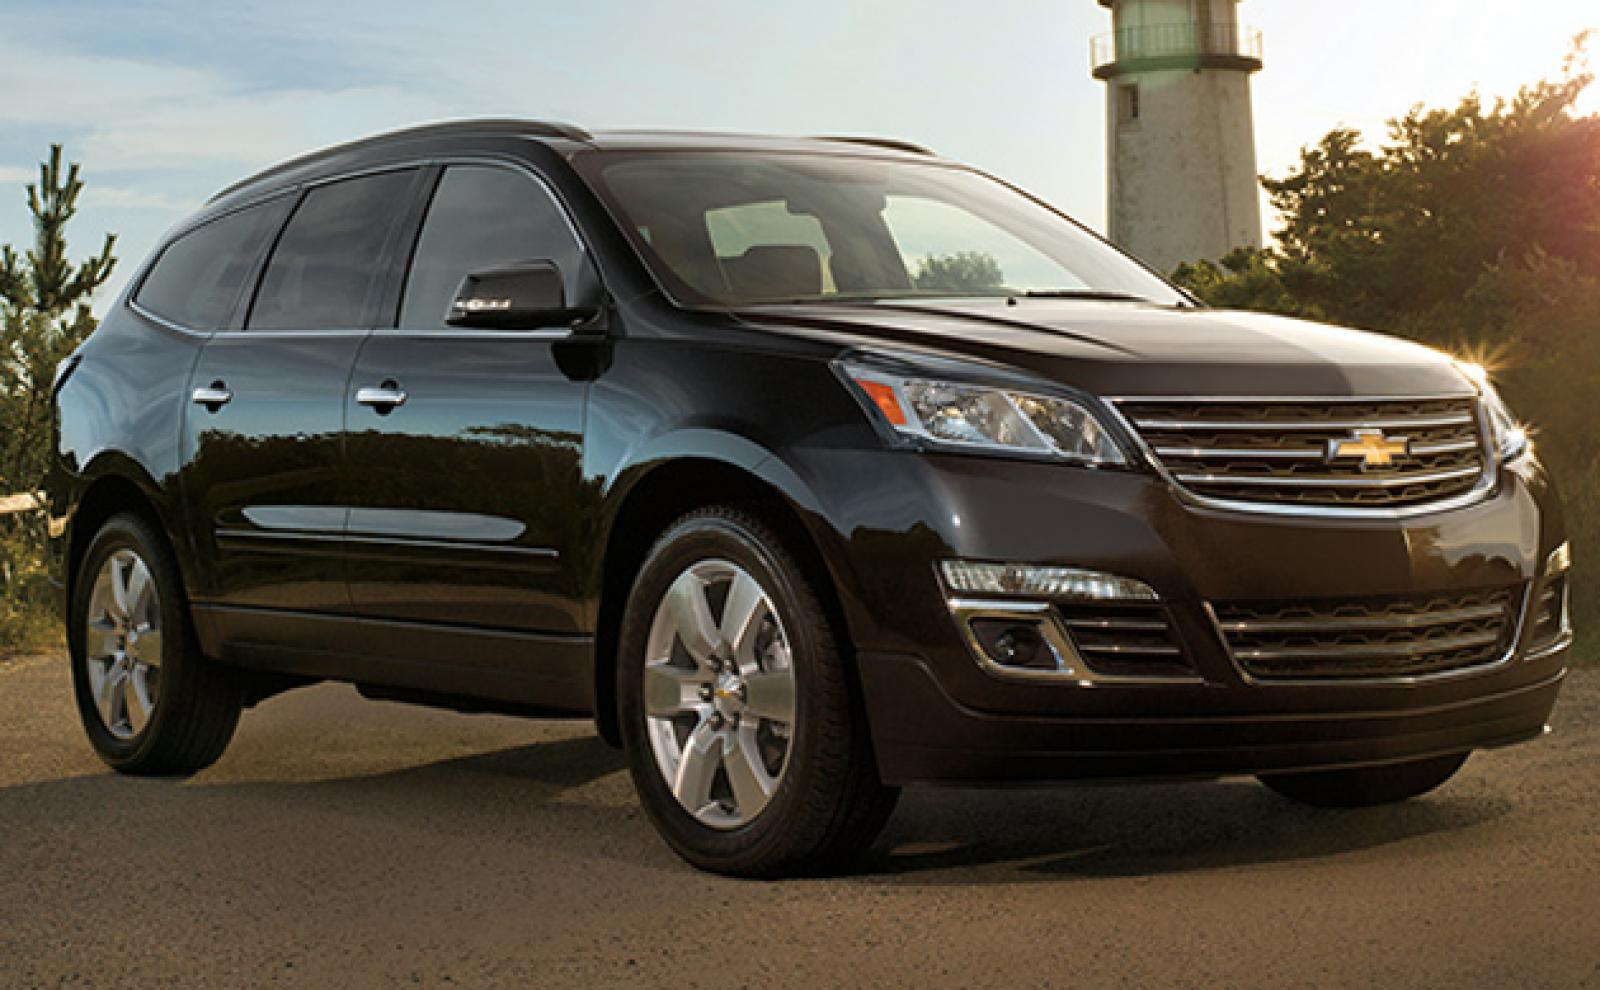 2014 chevrolet traverse information and photos zombiedrive. Black Bedroom Furniture Sets. Home Design Ideas